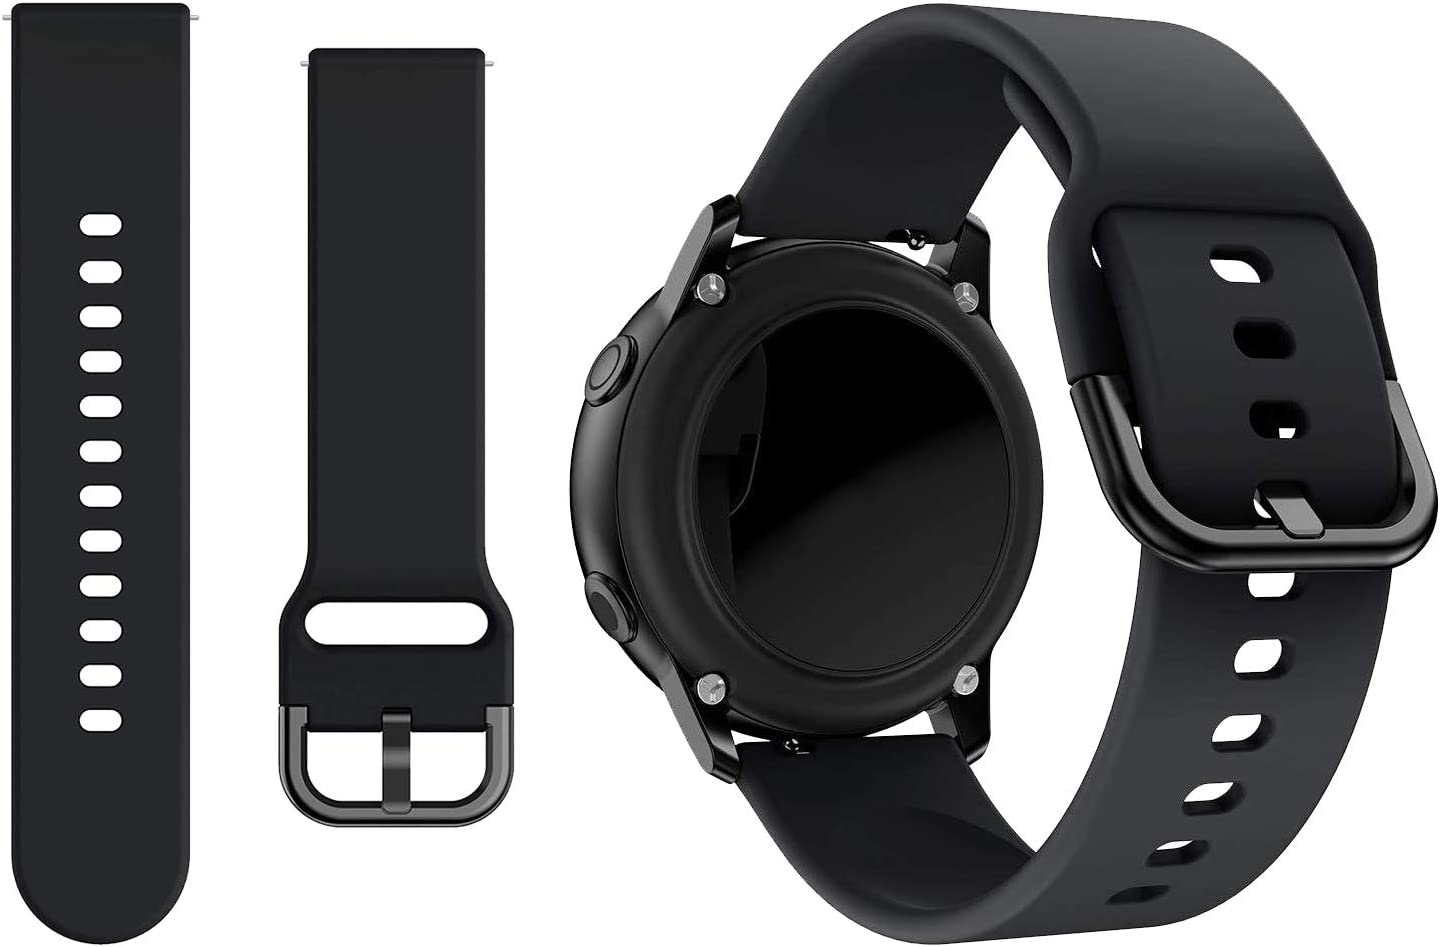 kitway Correa Compatible Galaxy Watch Active/Active2/Galaxy Watch 42mm/Gear S2 Classic, 20mm Silicona Replacement Correa para Galaxy Watch Active (40mm)/Active 2 40mm 44mm Smart Watch